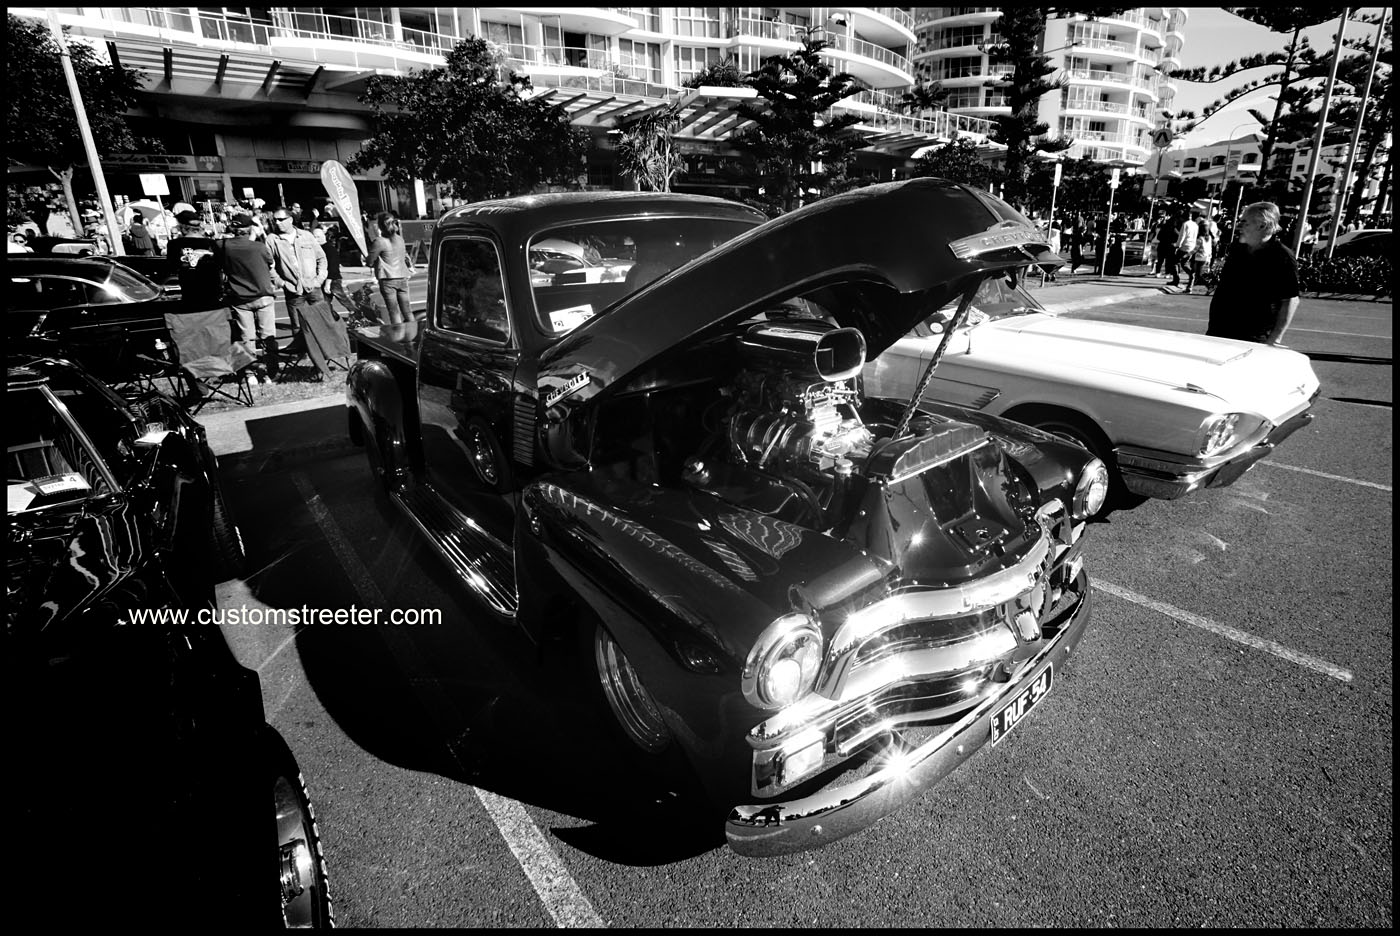 Cooly Rocks On, Gold Coast Australia Hot Rod show - Chevrolet pickup truck